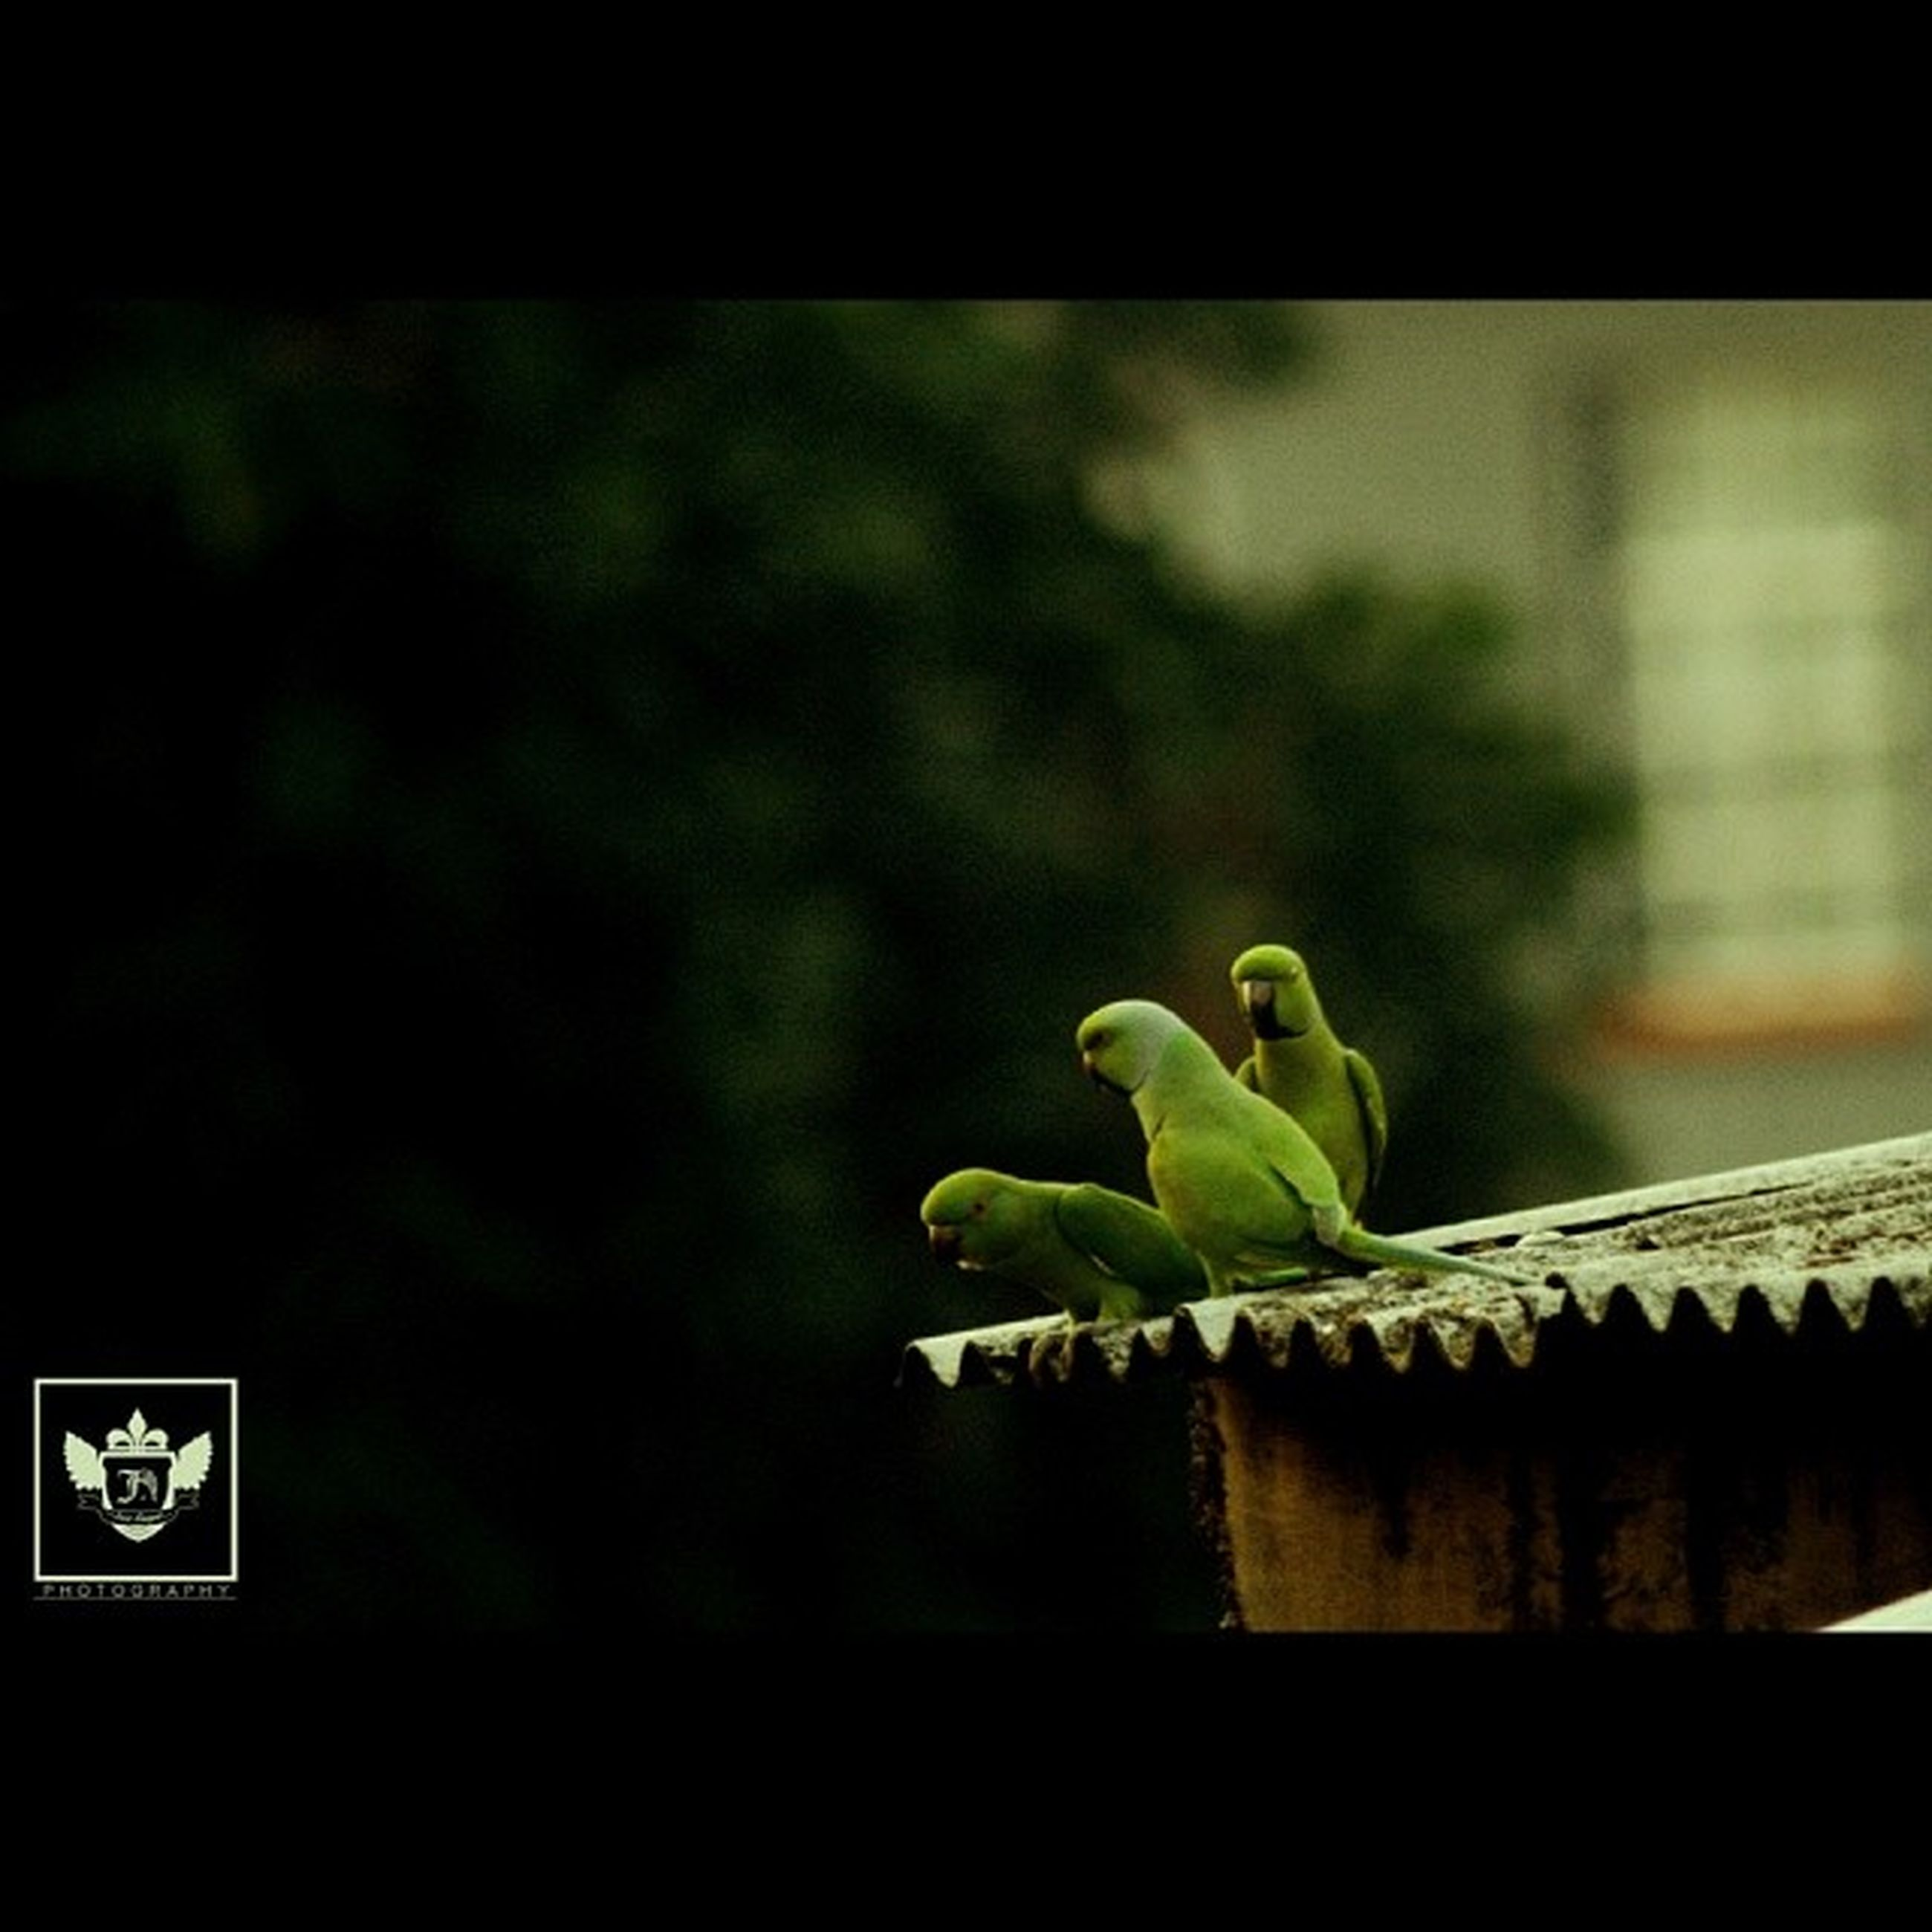 green color, leaf, focus on foreground, growth, close-up, plant, nature, green, selective focus, day, branch, no people, outdoors, growing, stem, tree, potted plant, sunlight, auto post production filter